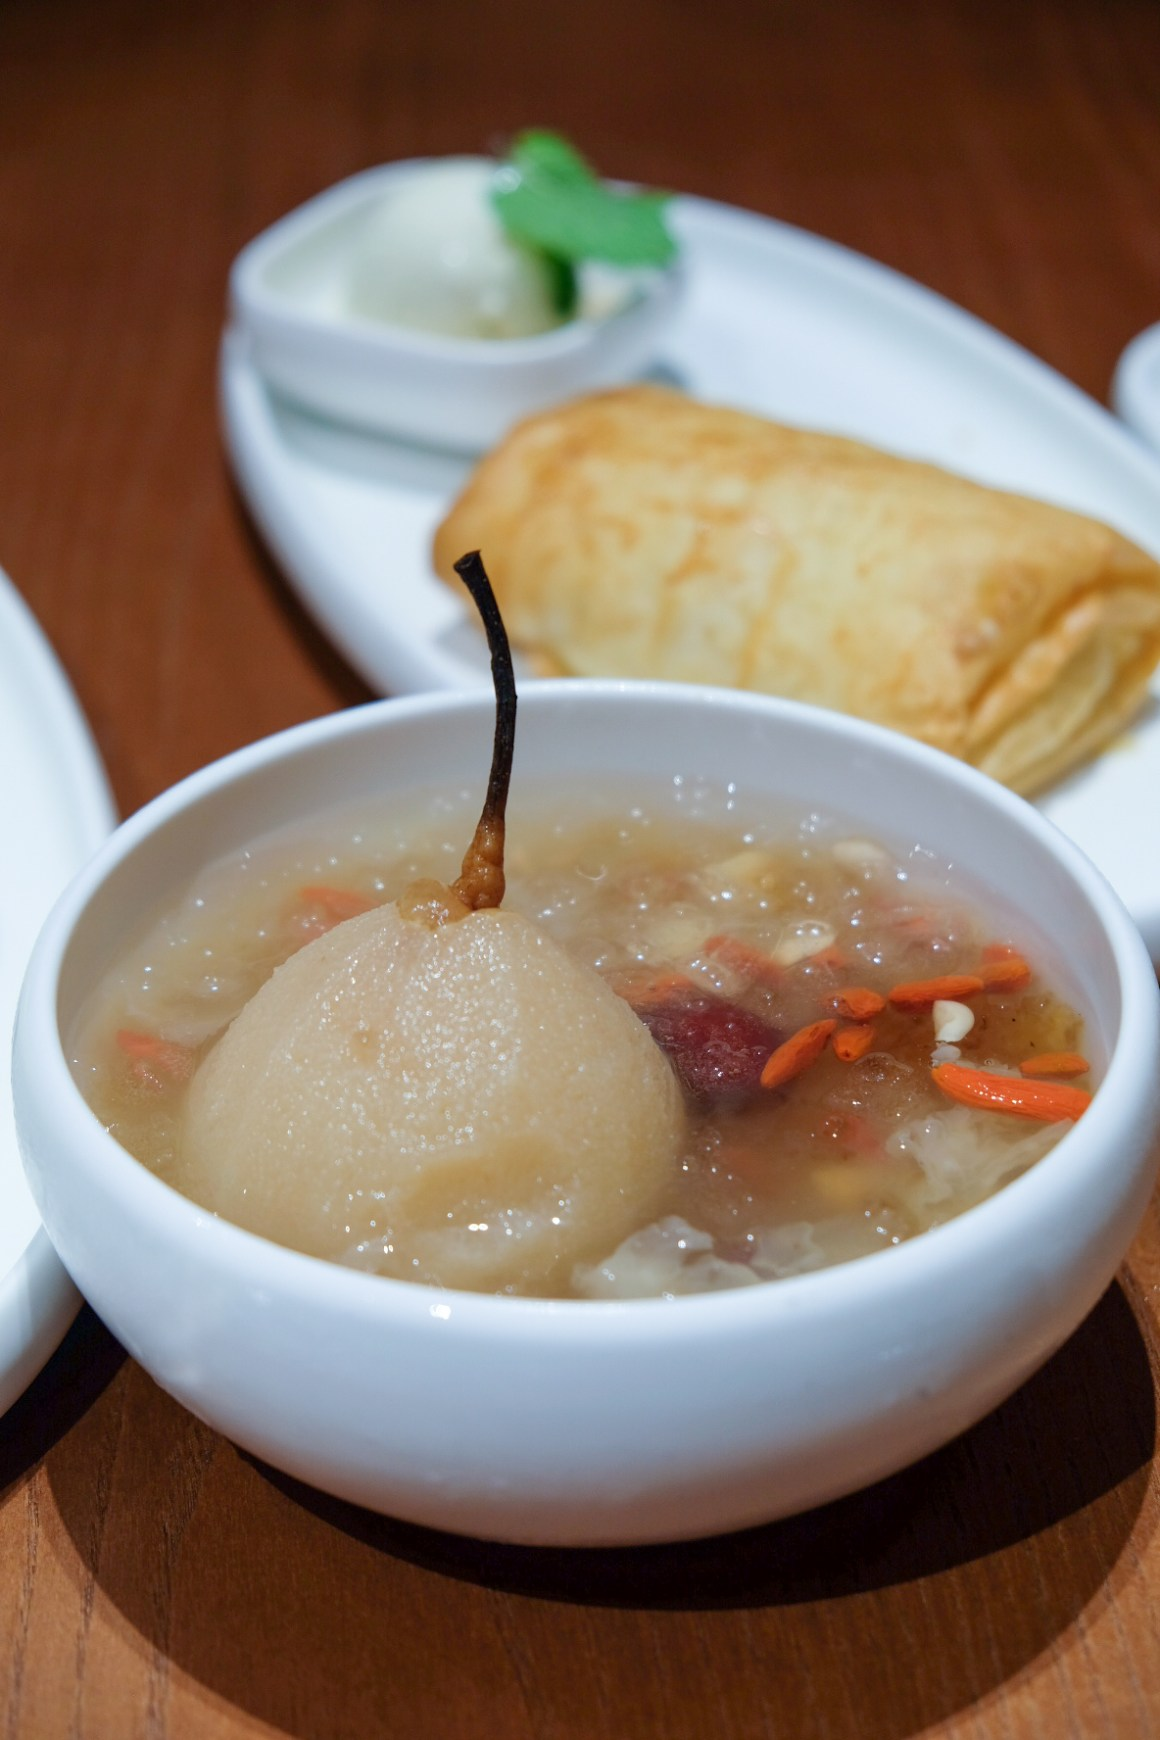 Double-boiled Tianjin Pear